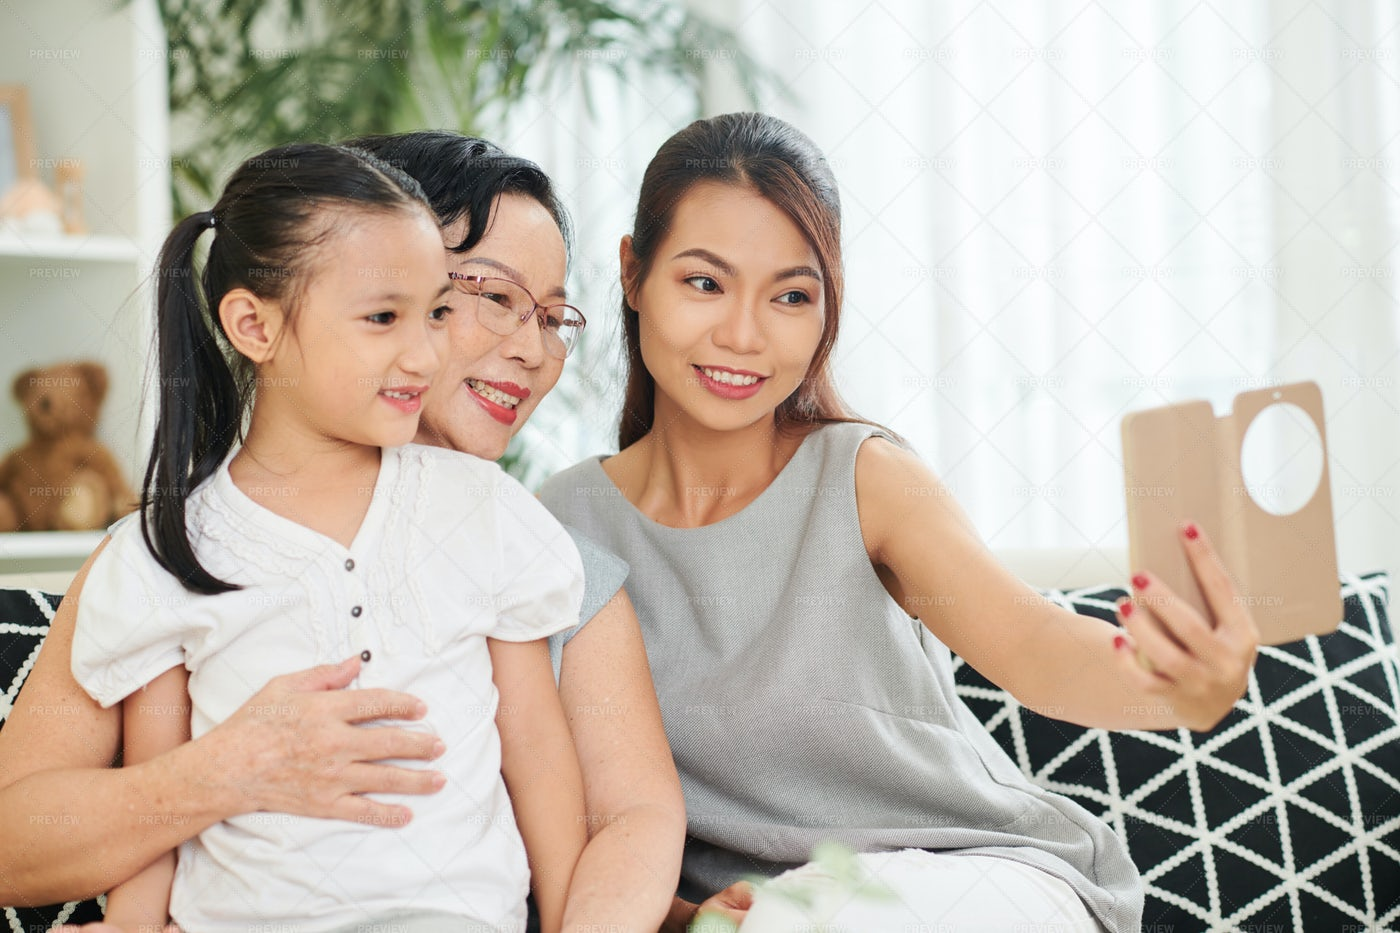 Family Portrait At Home: Stock Photos